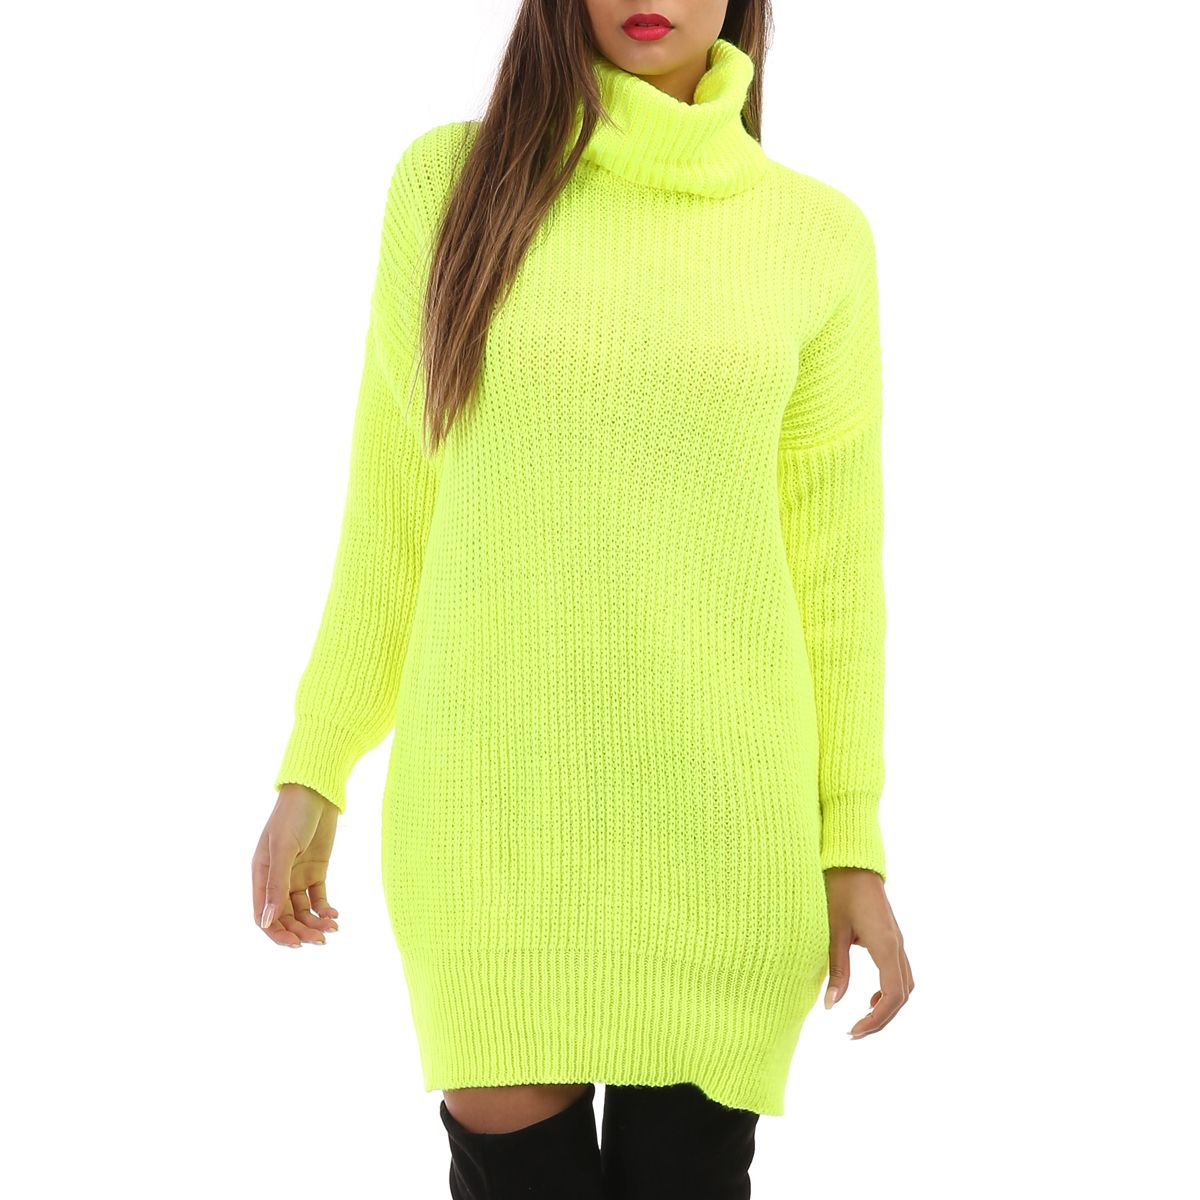 Robe pull jaune fluo col roulé